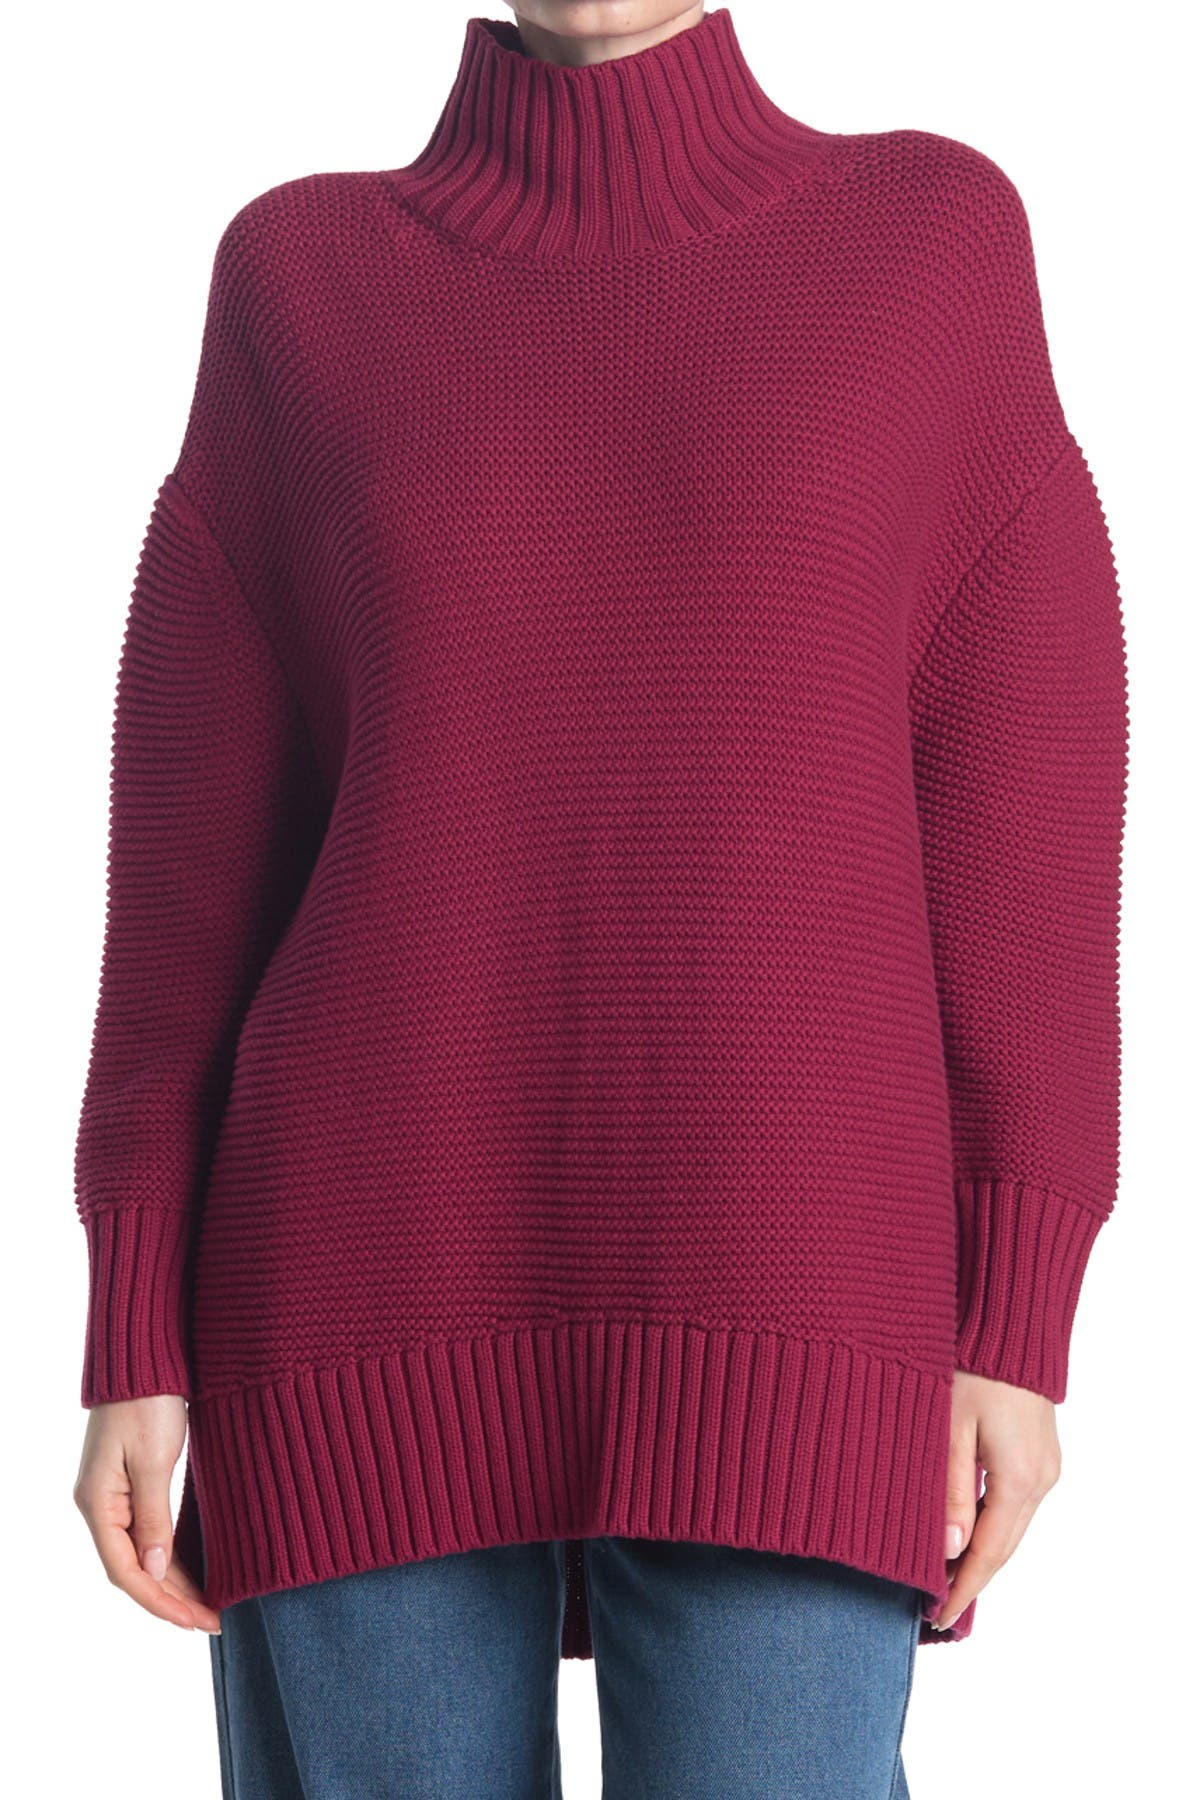 Image of French Connection Mara Mozart High Neck Jumper